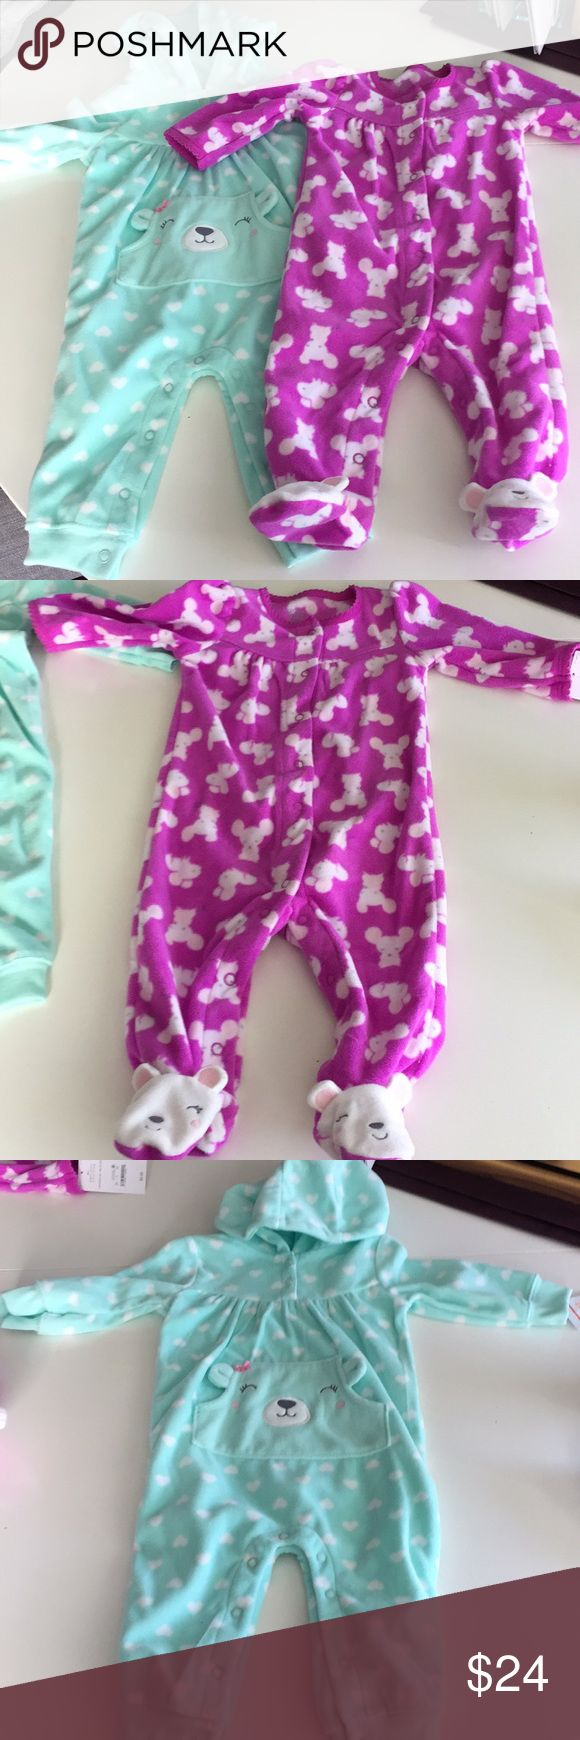 NWT long sleeve fleece onesie bundle, 6 mos NWT Bundle of 2 long-sleeved fleece Onesies, 6 mos. Perfect holiday gift for a little girl!! The mint green hooded onesie snaps up the legs and has buttons at the collar. No footies. Adorable little smiling bear face on a front pocket and white hearts printed all over. 2nd onesie is purple with snaps from the top all the way to the feet. Patterned with little mice and have smiling mice on each foot (footed onesie) One Pieces